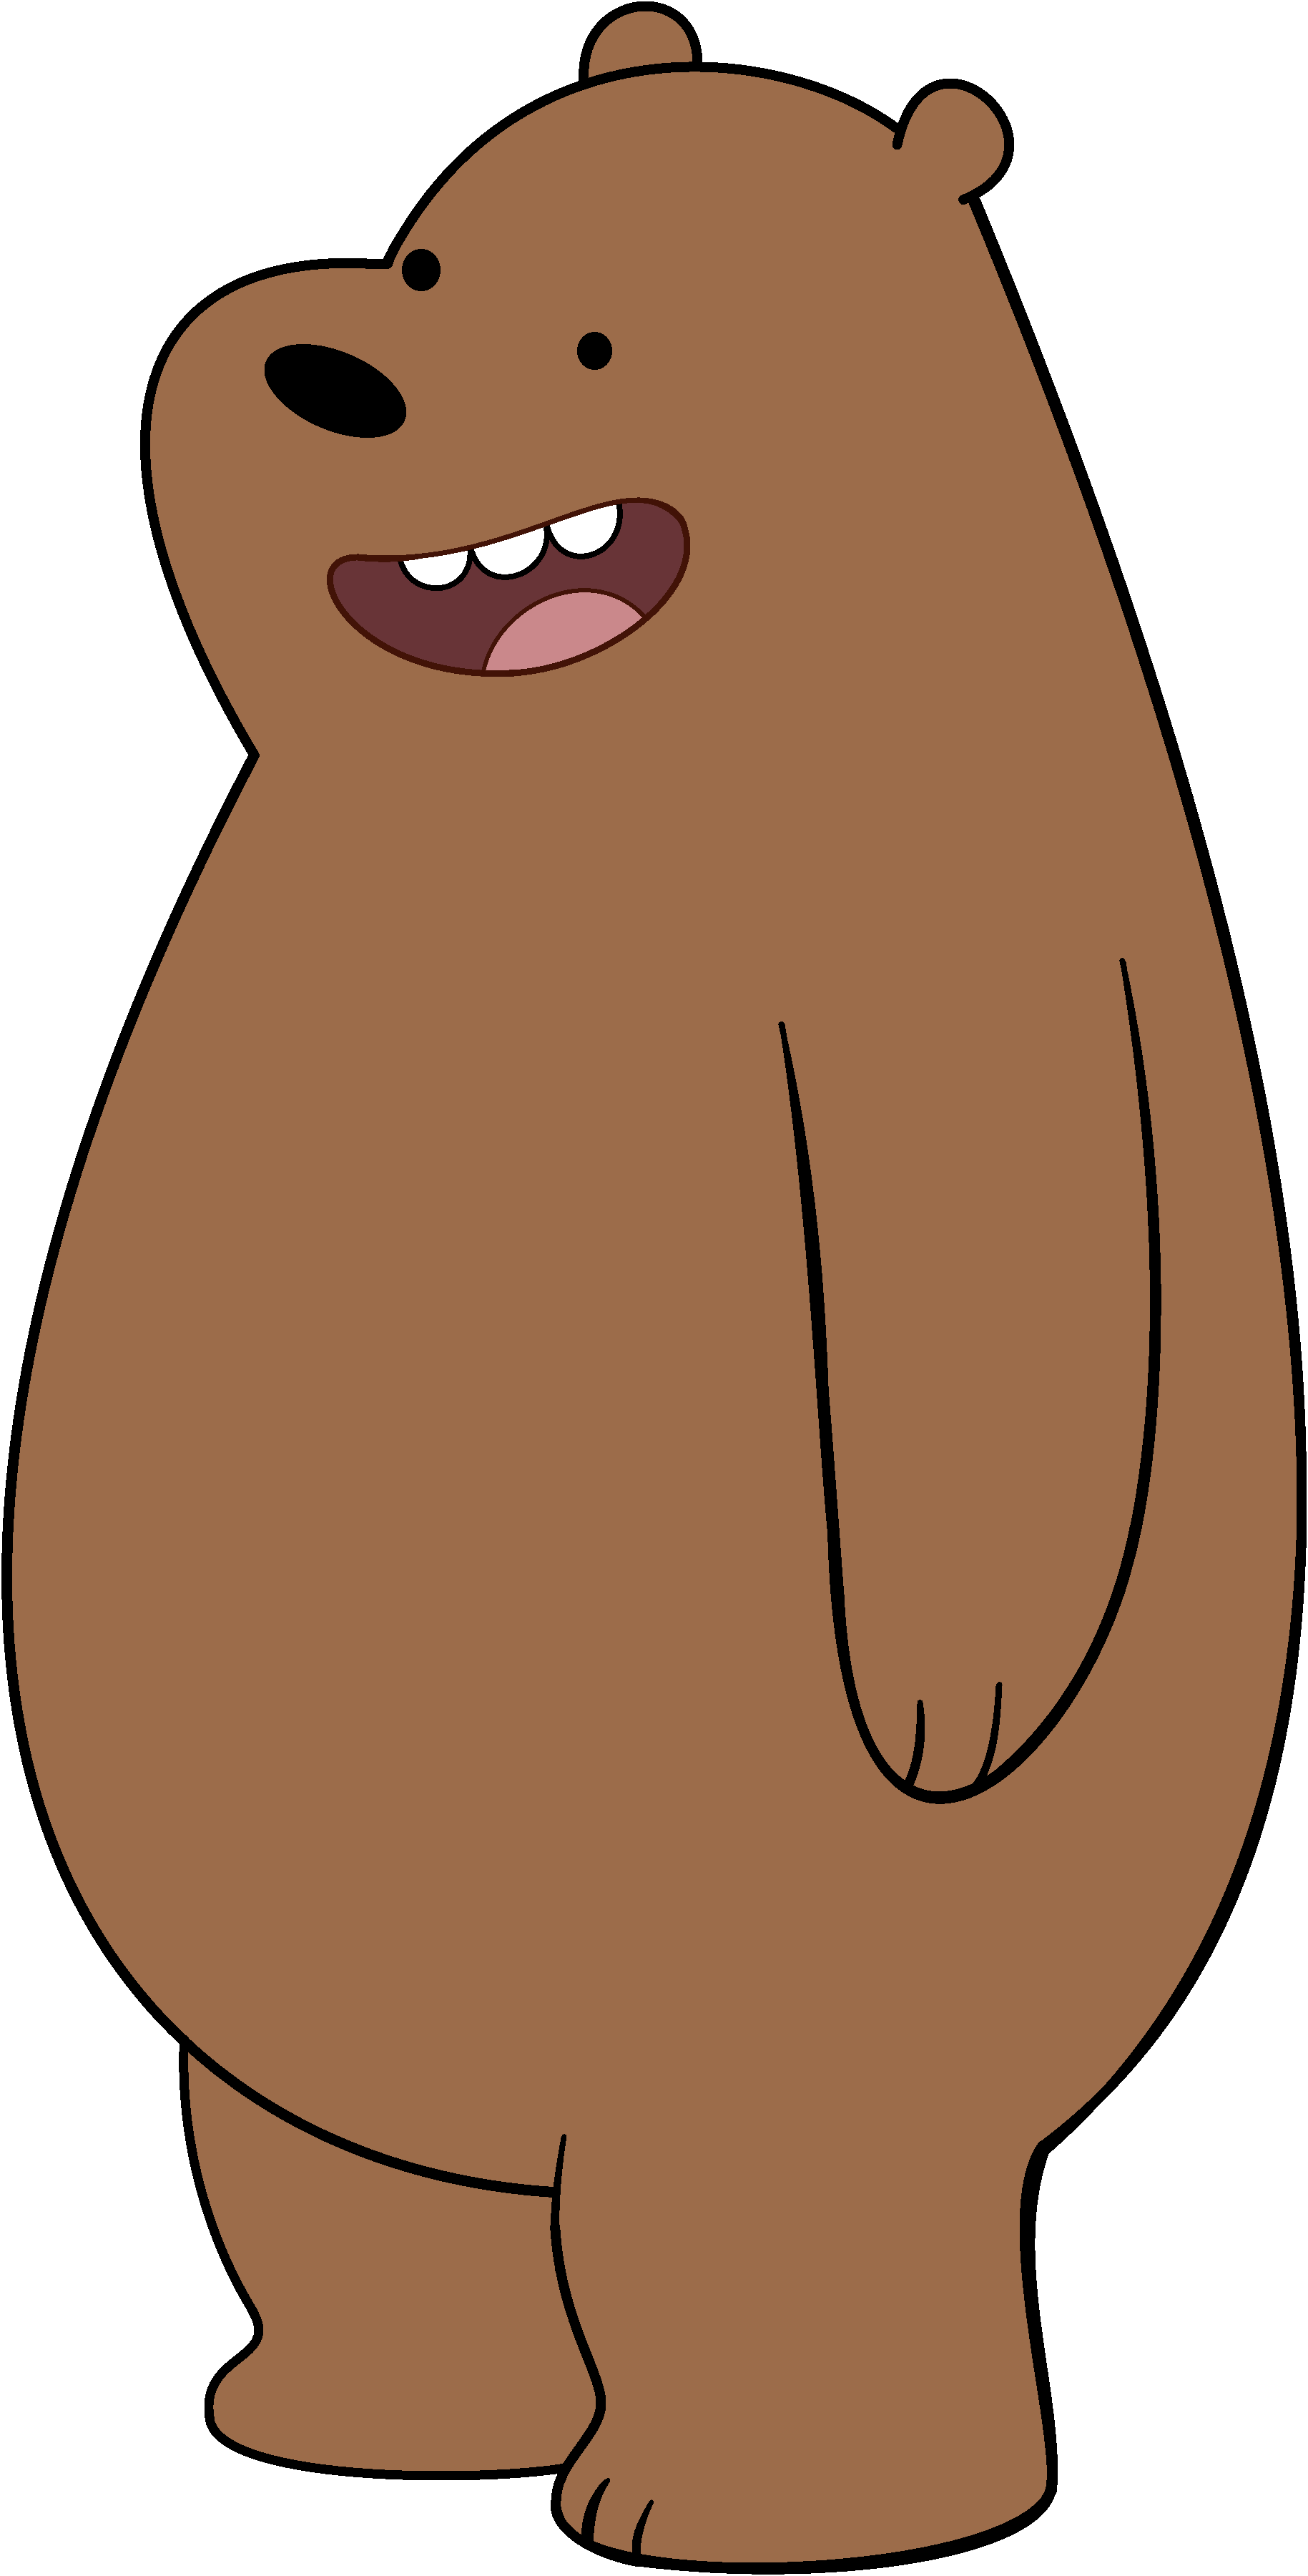 Clipart bear omnivores. Grizzly canon we bare